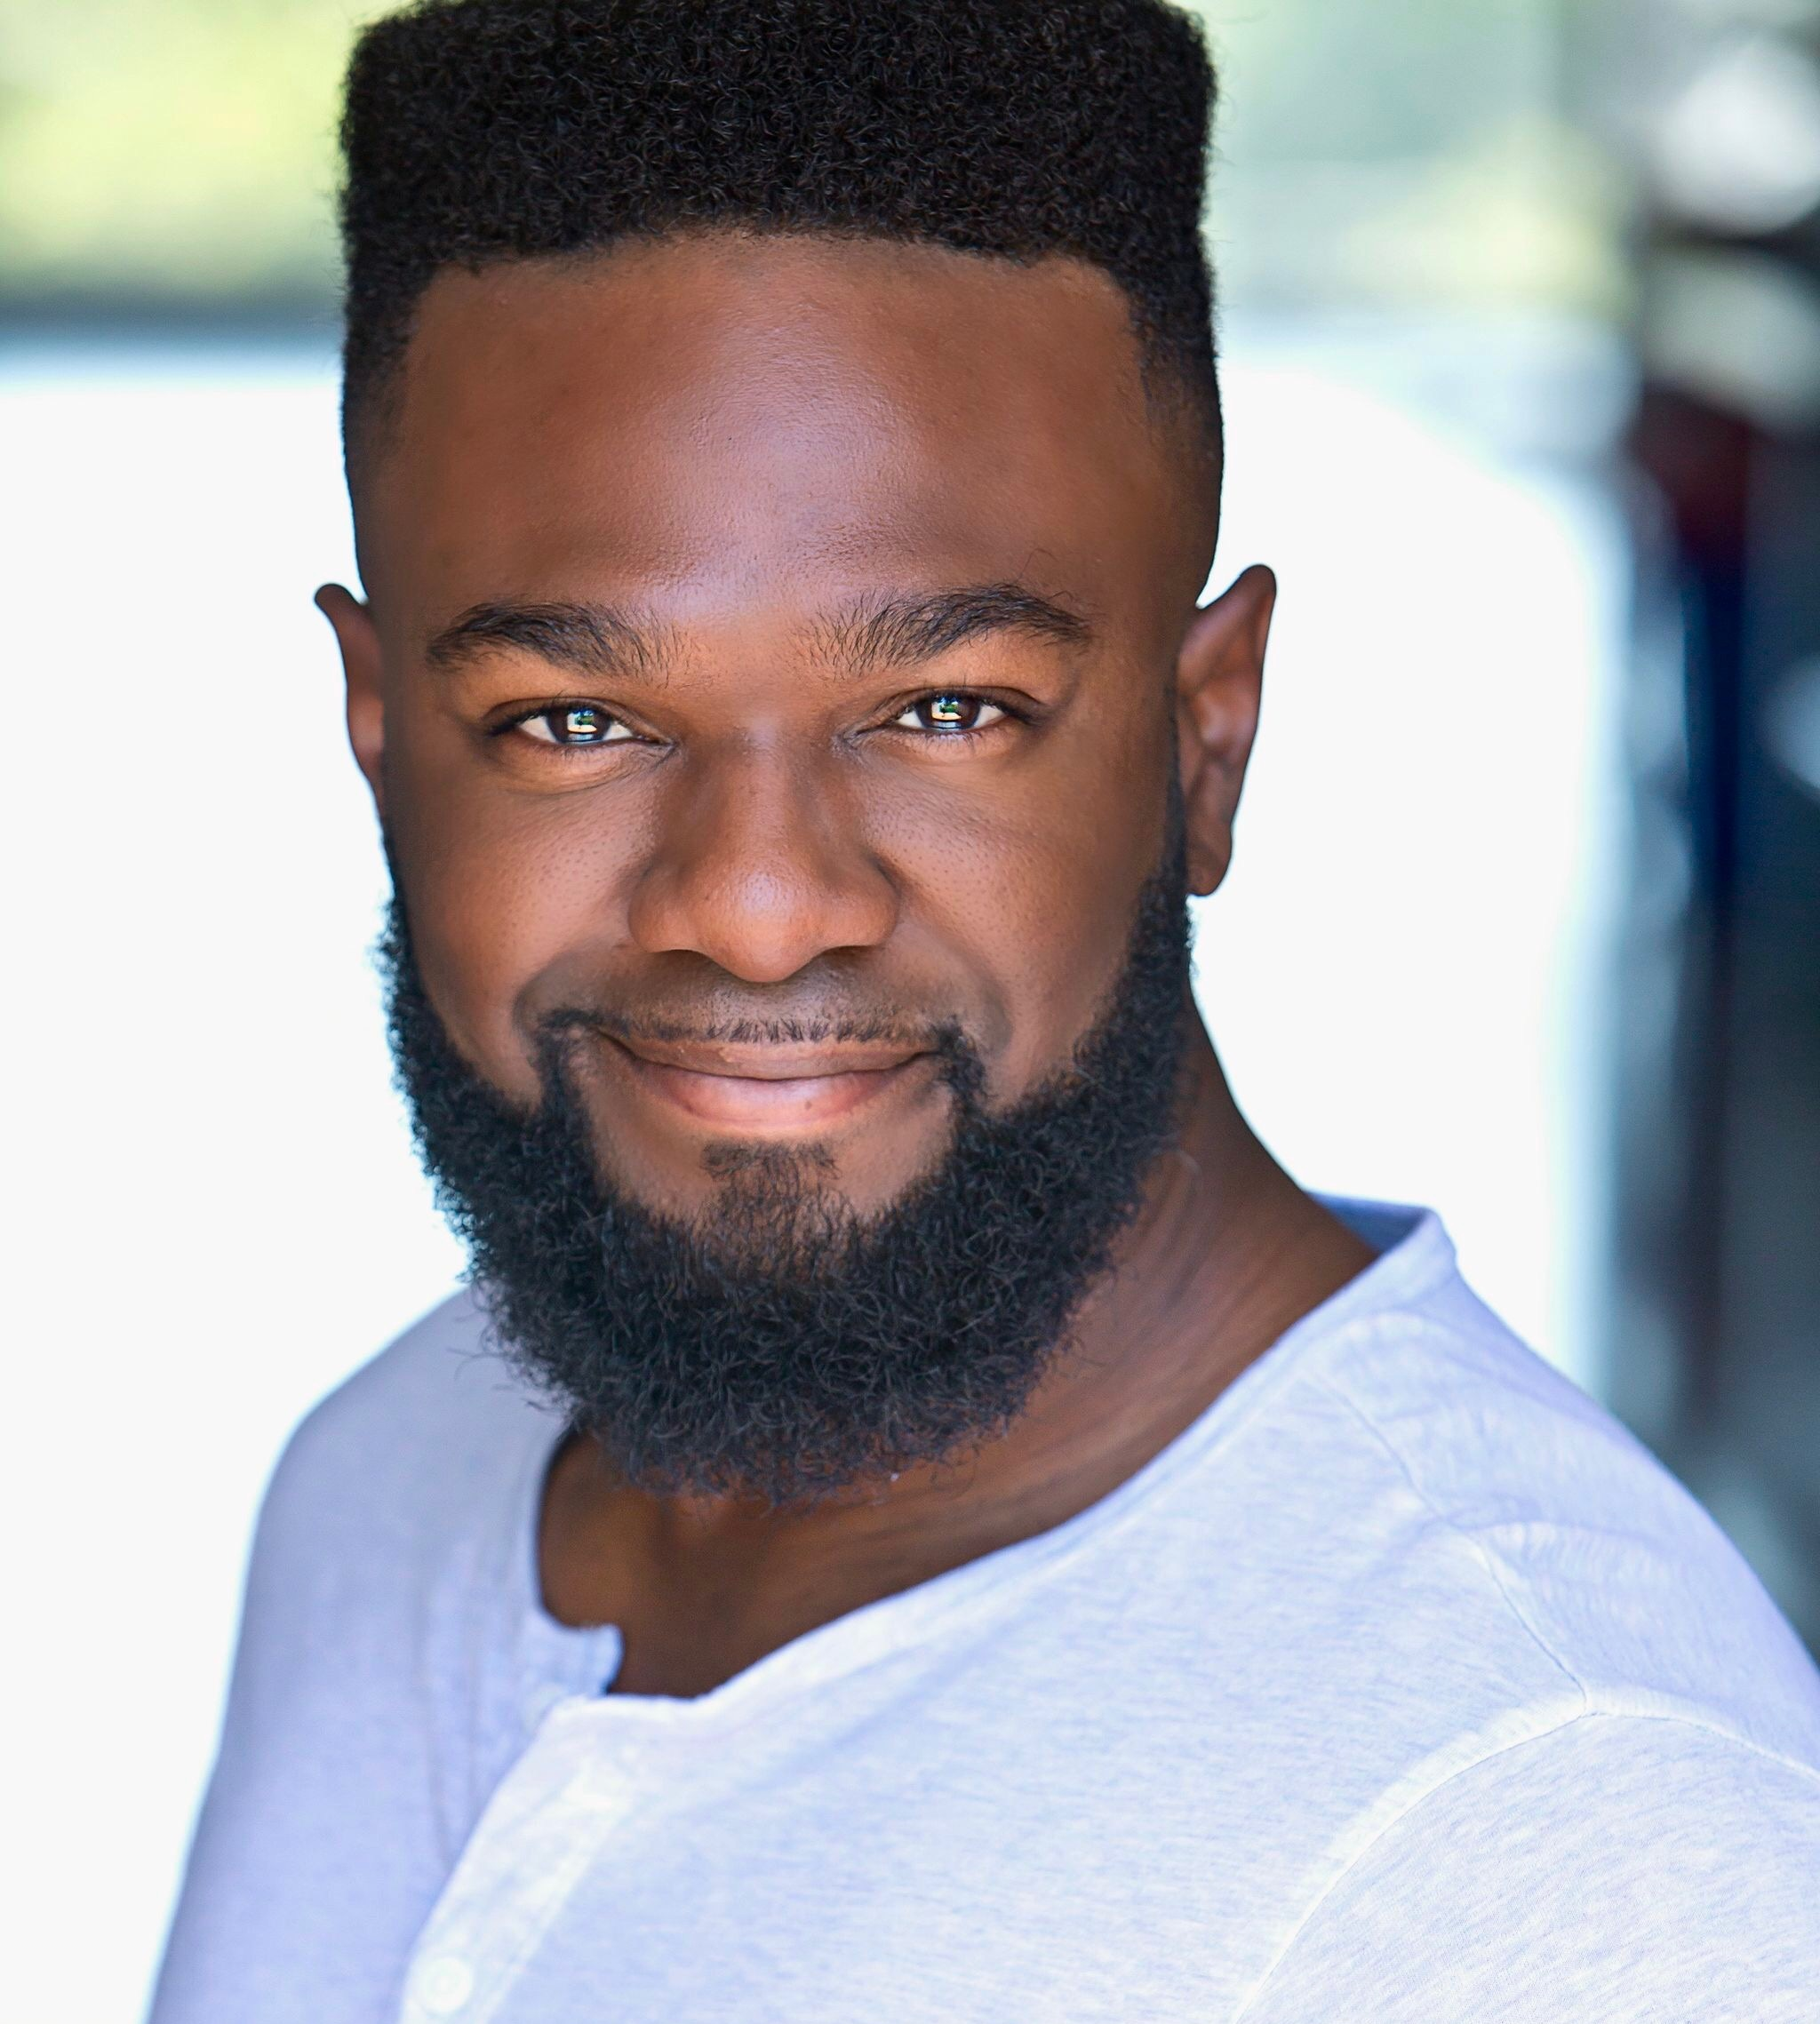 Jeremy Rashad Brown - is an actor, playwright, director, film and theater producer, singer-songwriter, entrepreneur and founder of Brown Boy Productions, LLC. Learn more about him, his latest project Rap Unzel, and his involvement in the creative community of ATX!